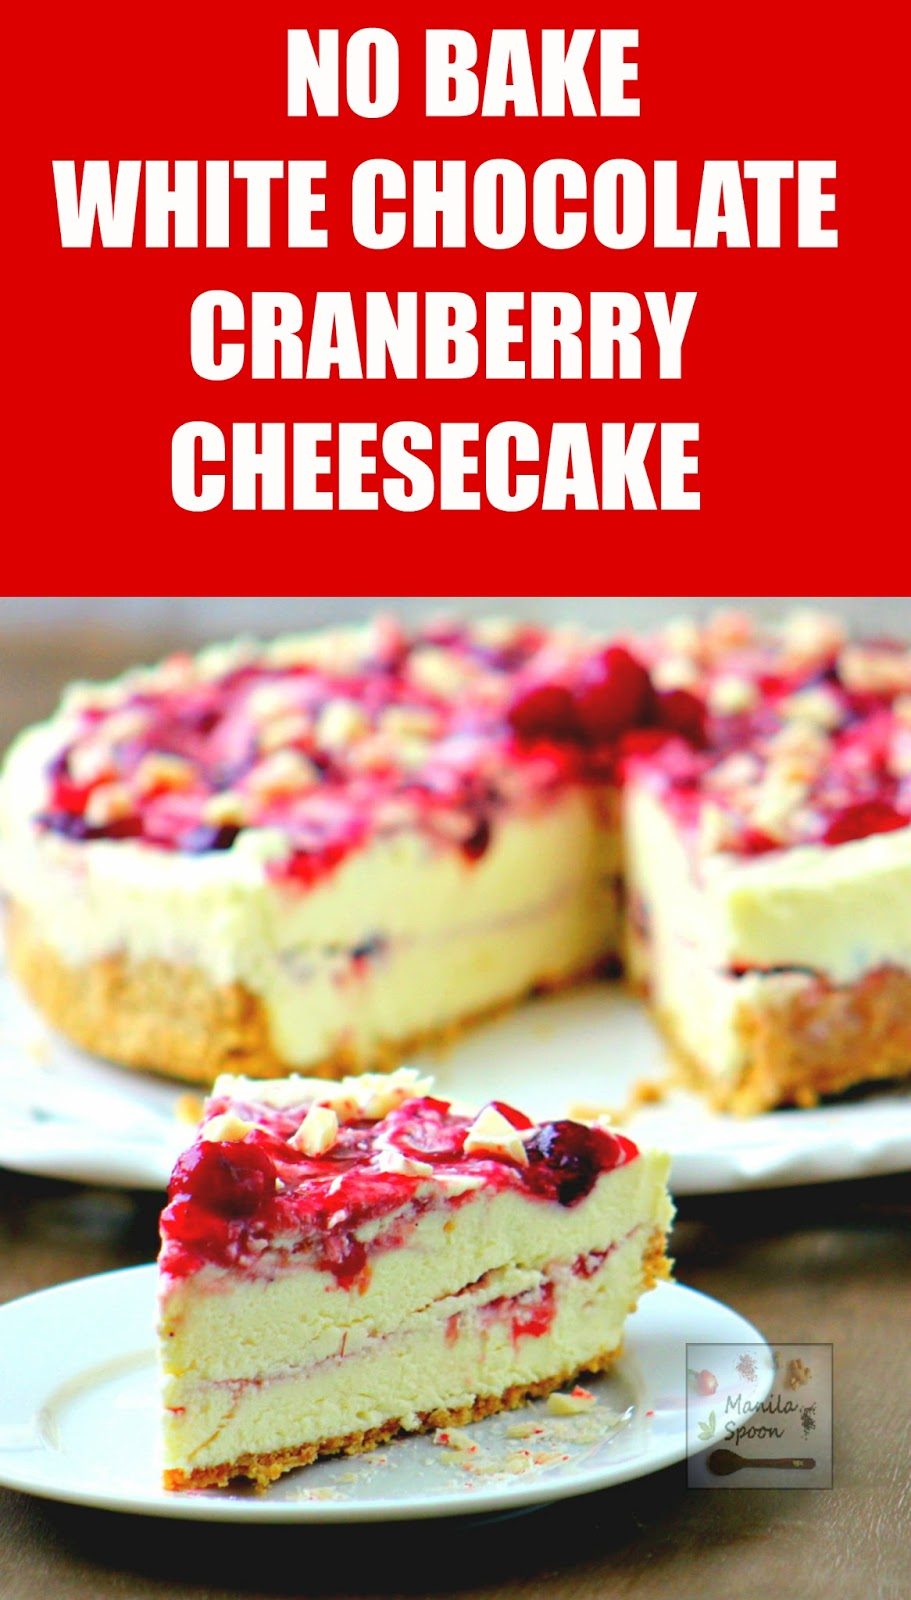 The ultimate dessert for Christmas, New Year or any holiday! EASY No Bake White Chocolate Cranberry Cheesecake - fruity, creamy, chocolaty and totally delicious!